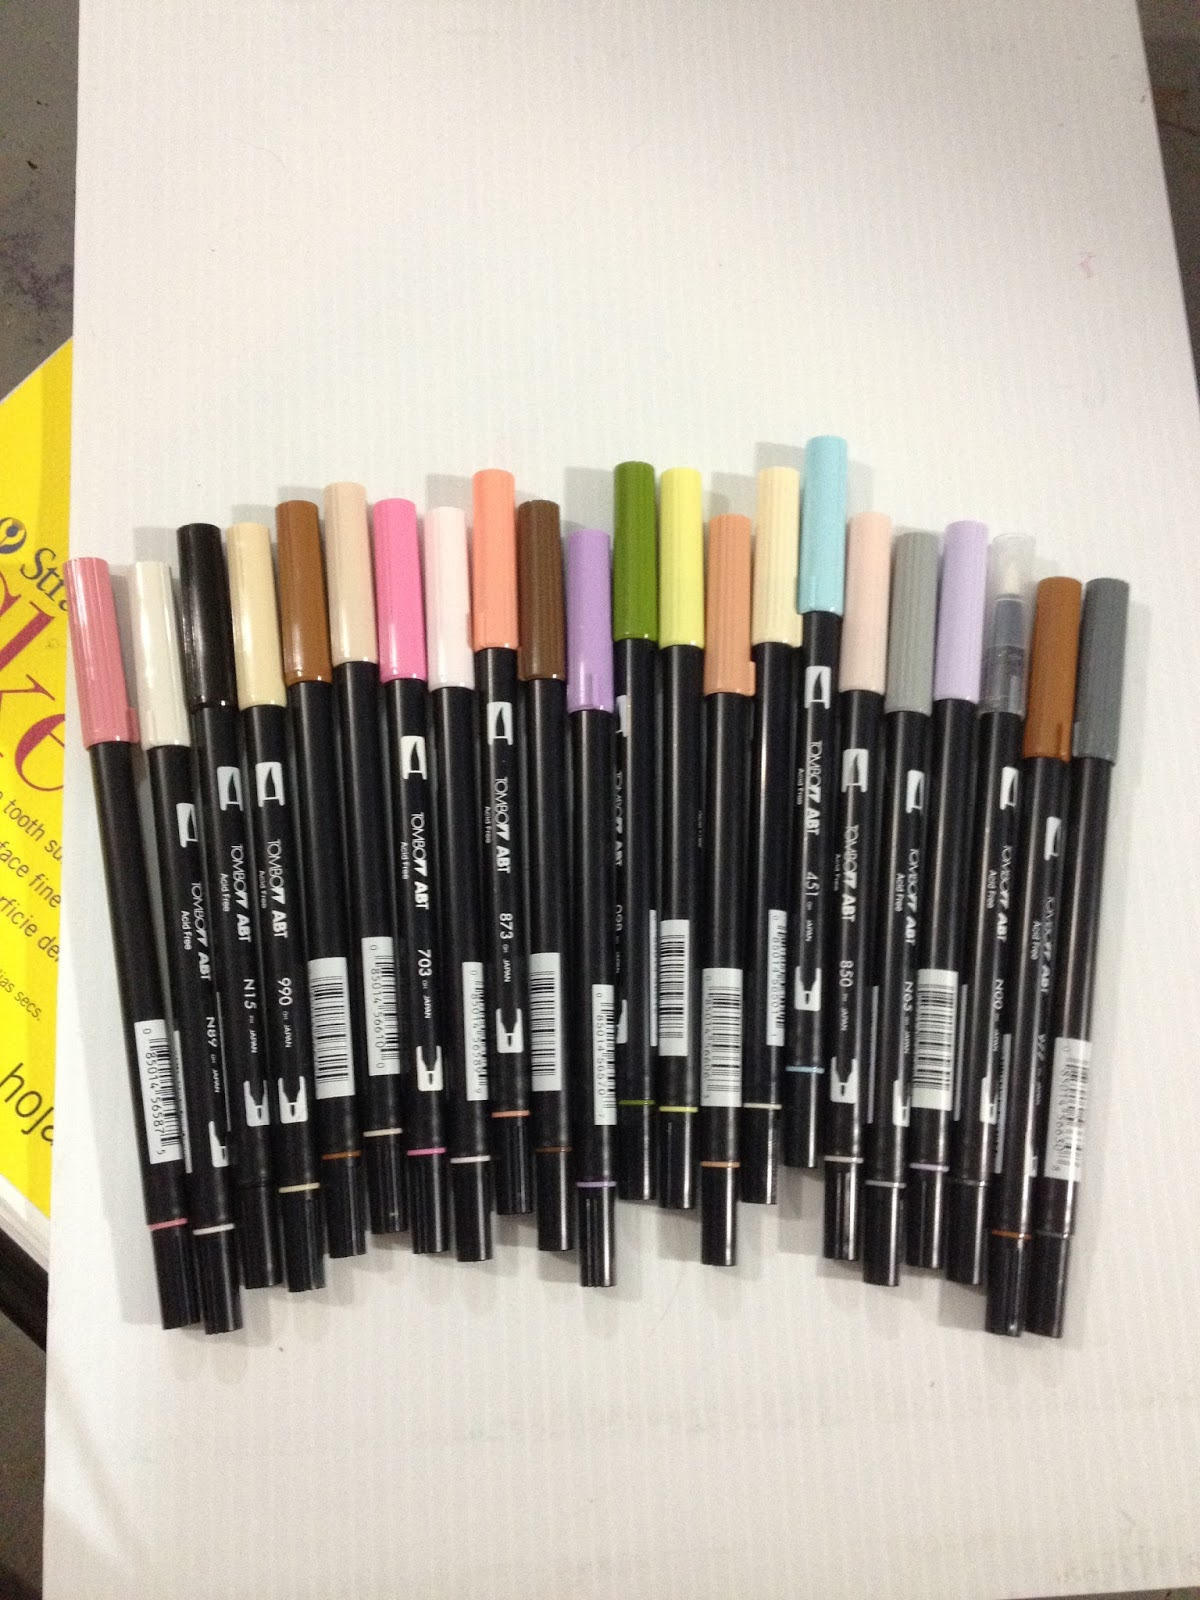 What Are The Best Brushes For Water Based Paint